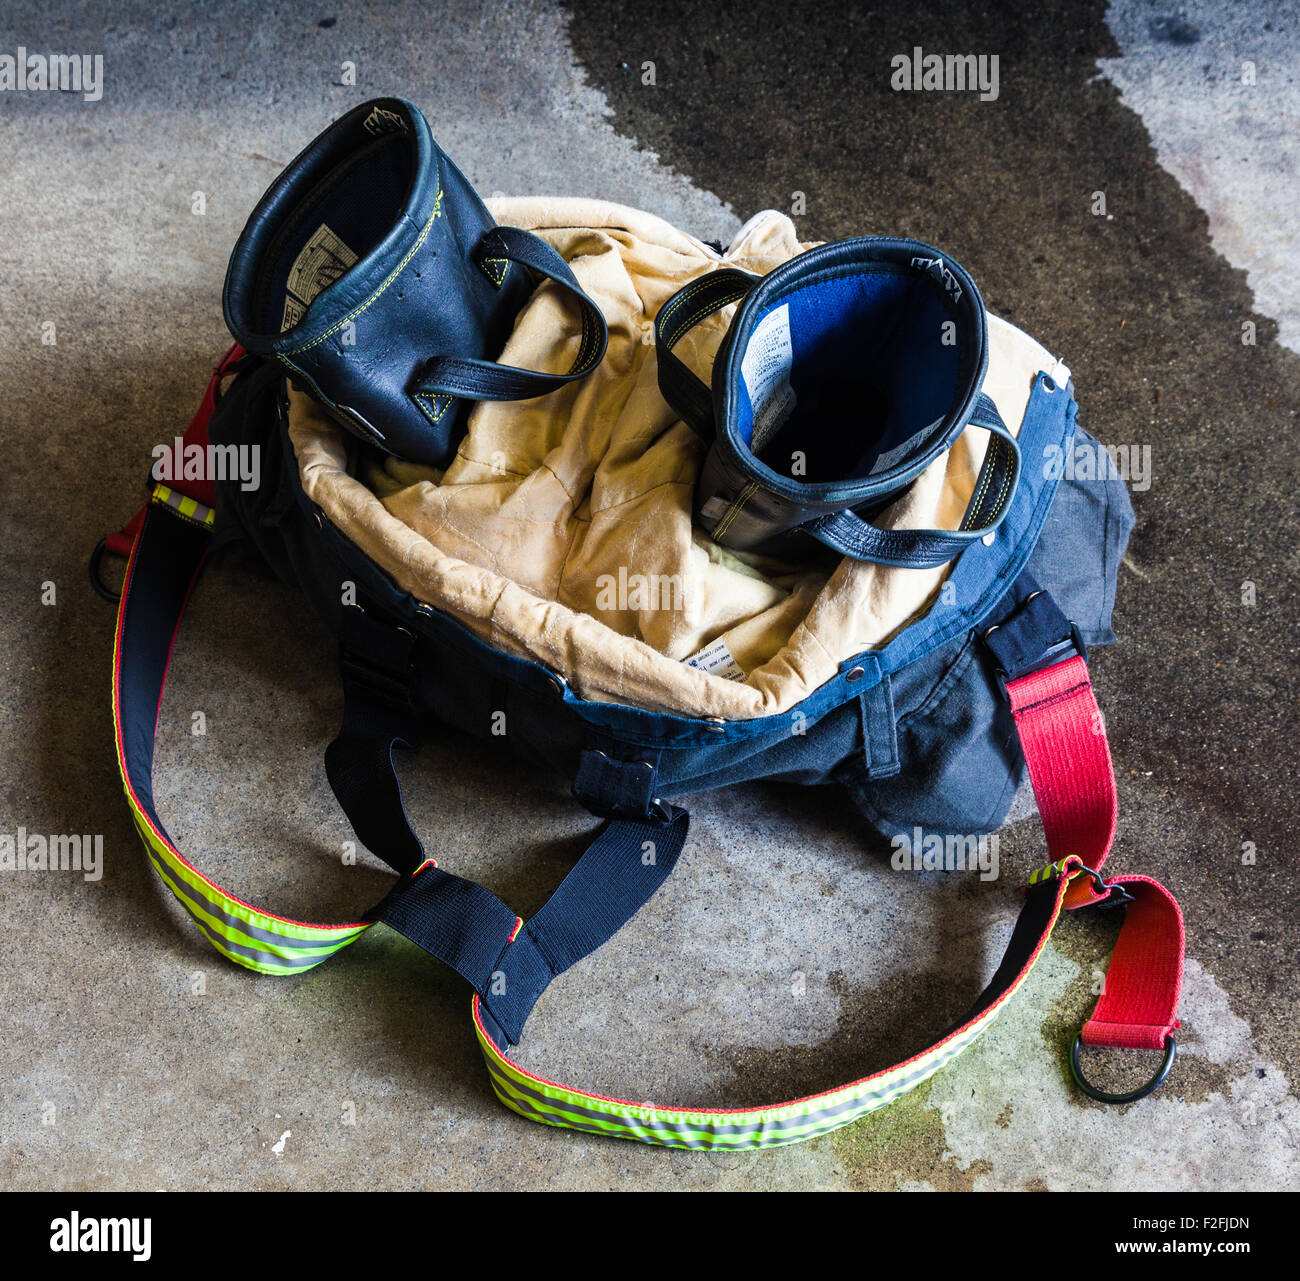 Detail of a fireman's pants and boots in readiness for an emergency call from a Vancouver Fire Hall - Stock Image